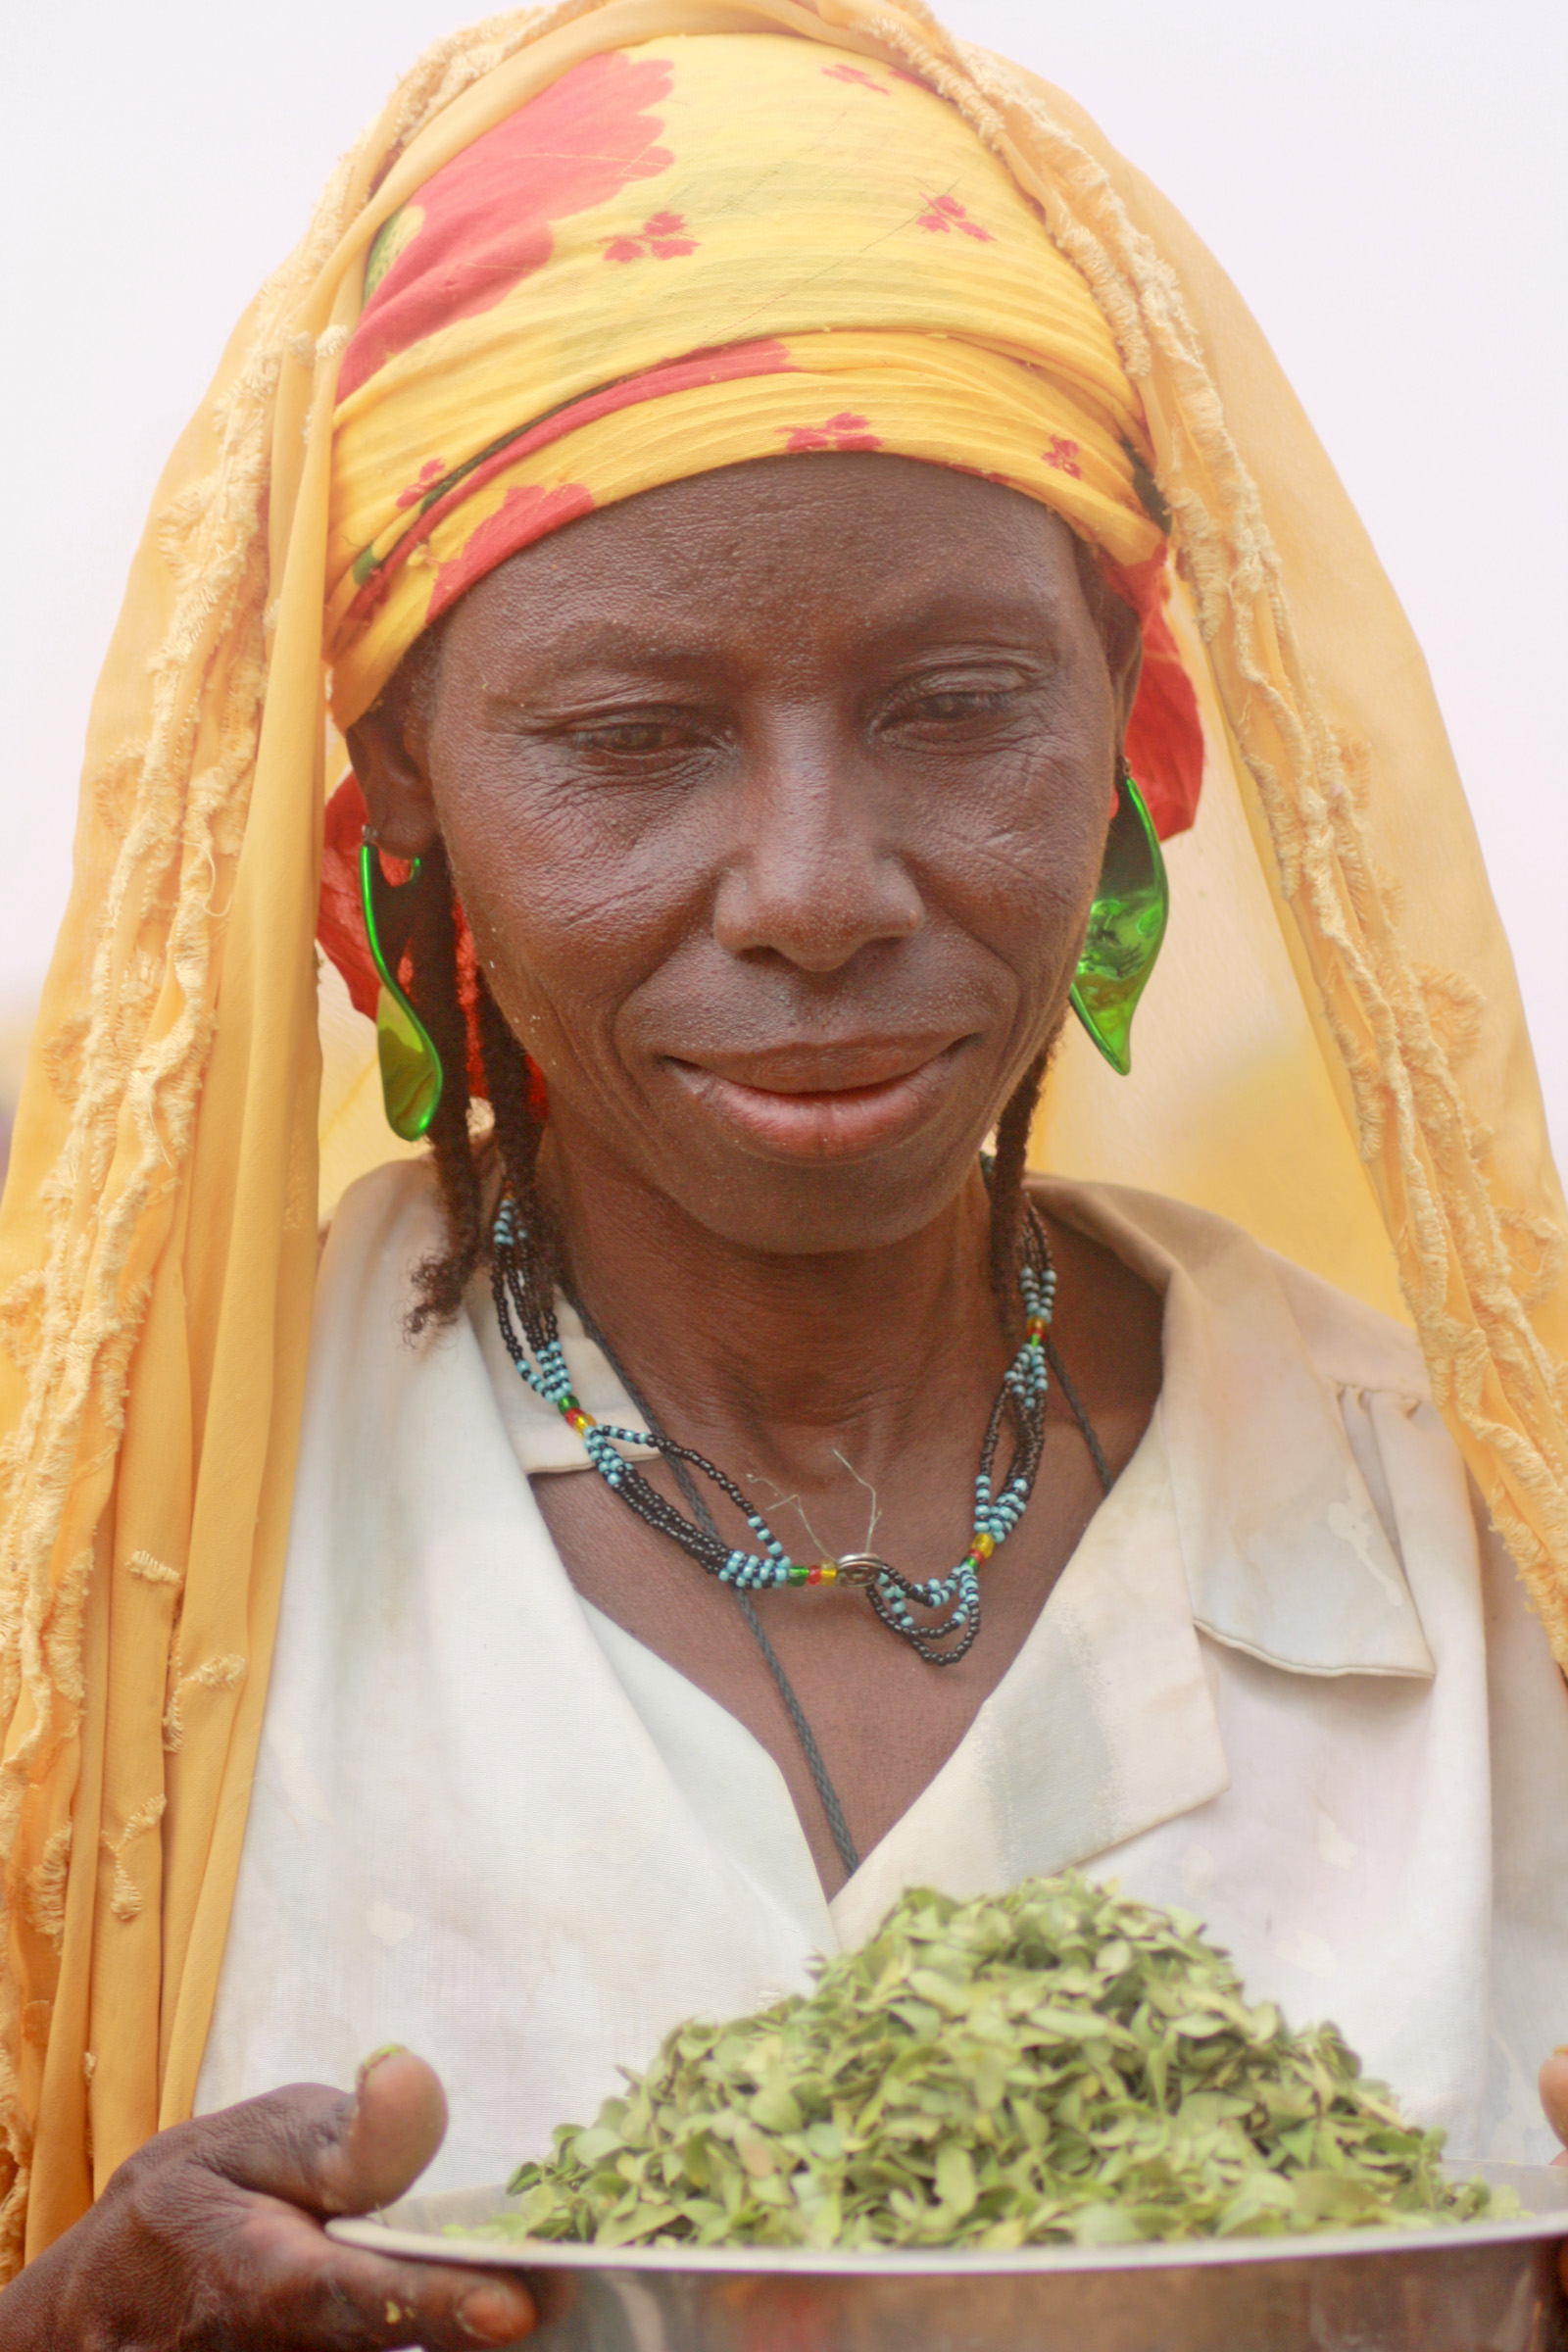 Hani Issa from Talkadabey village in Oullam district in Niger's Tillaberi region shows the wild leaves her family has been surviving on since last year